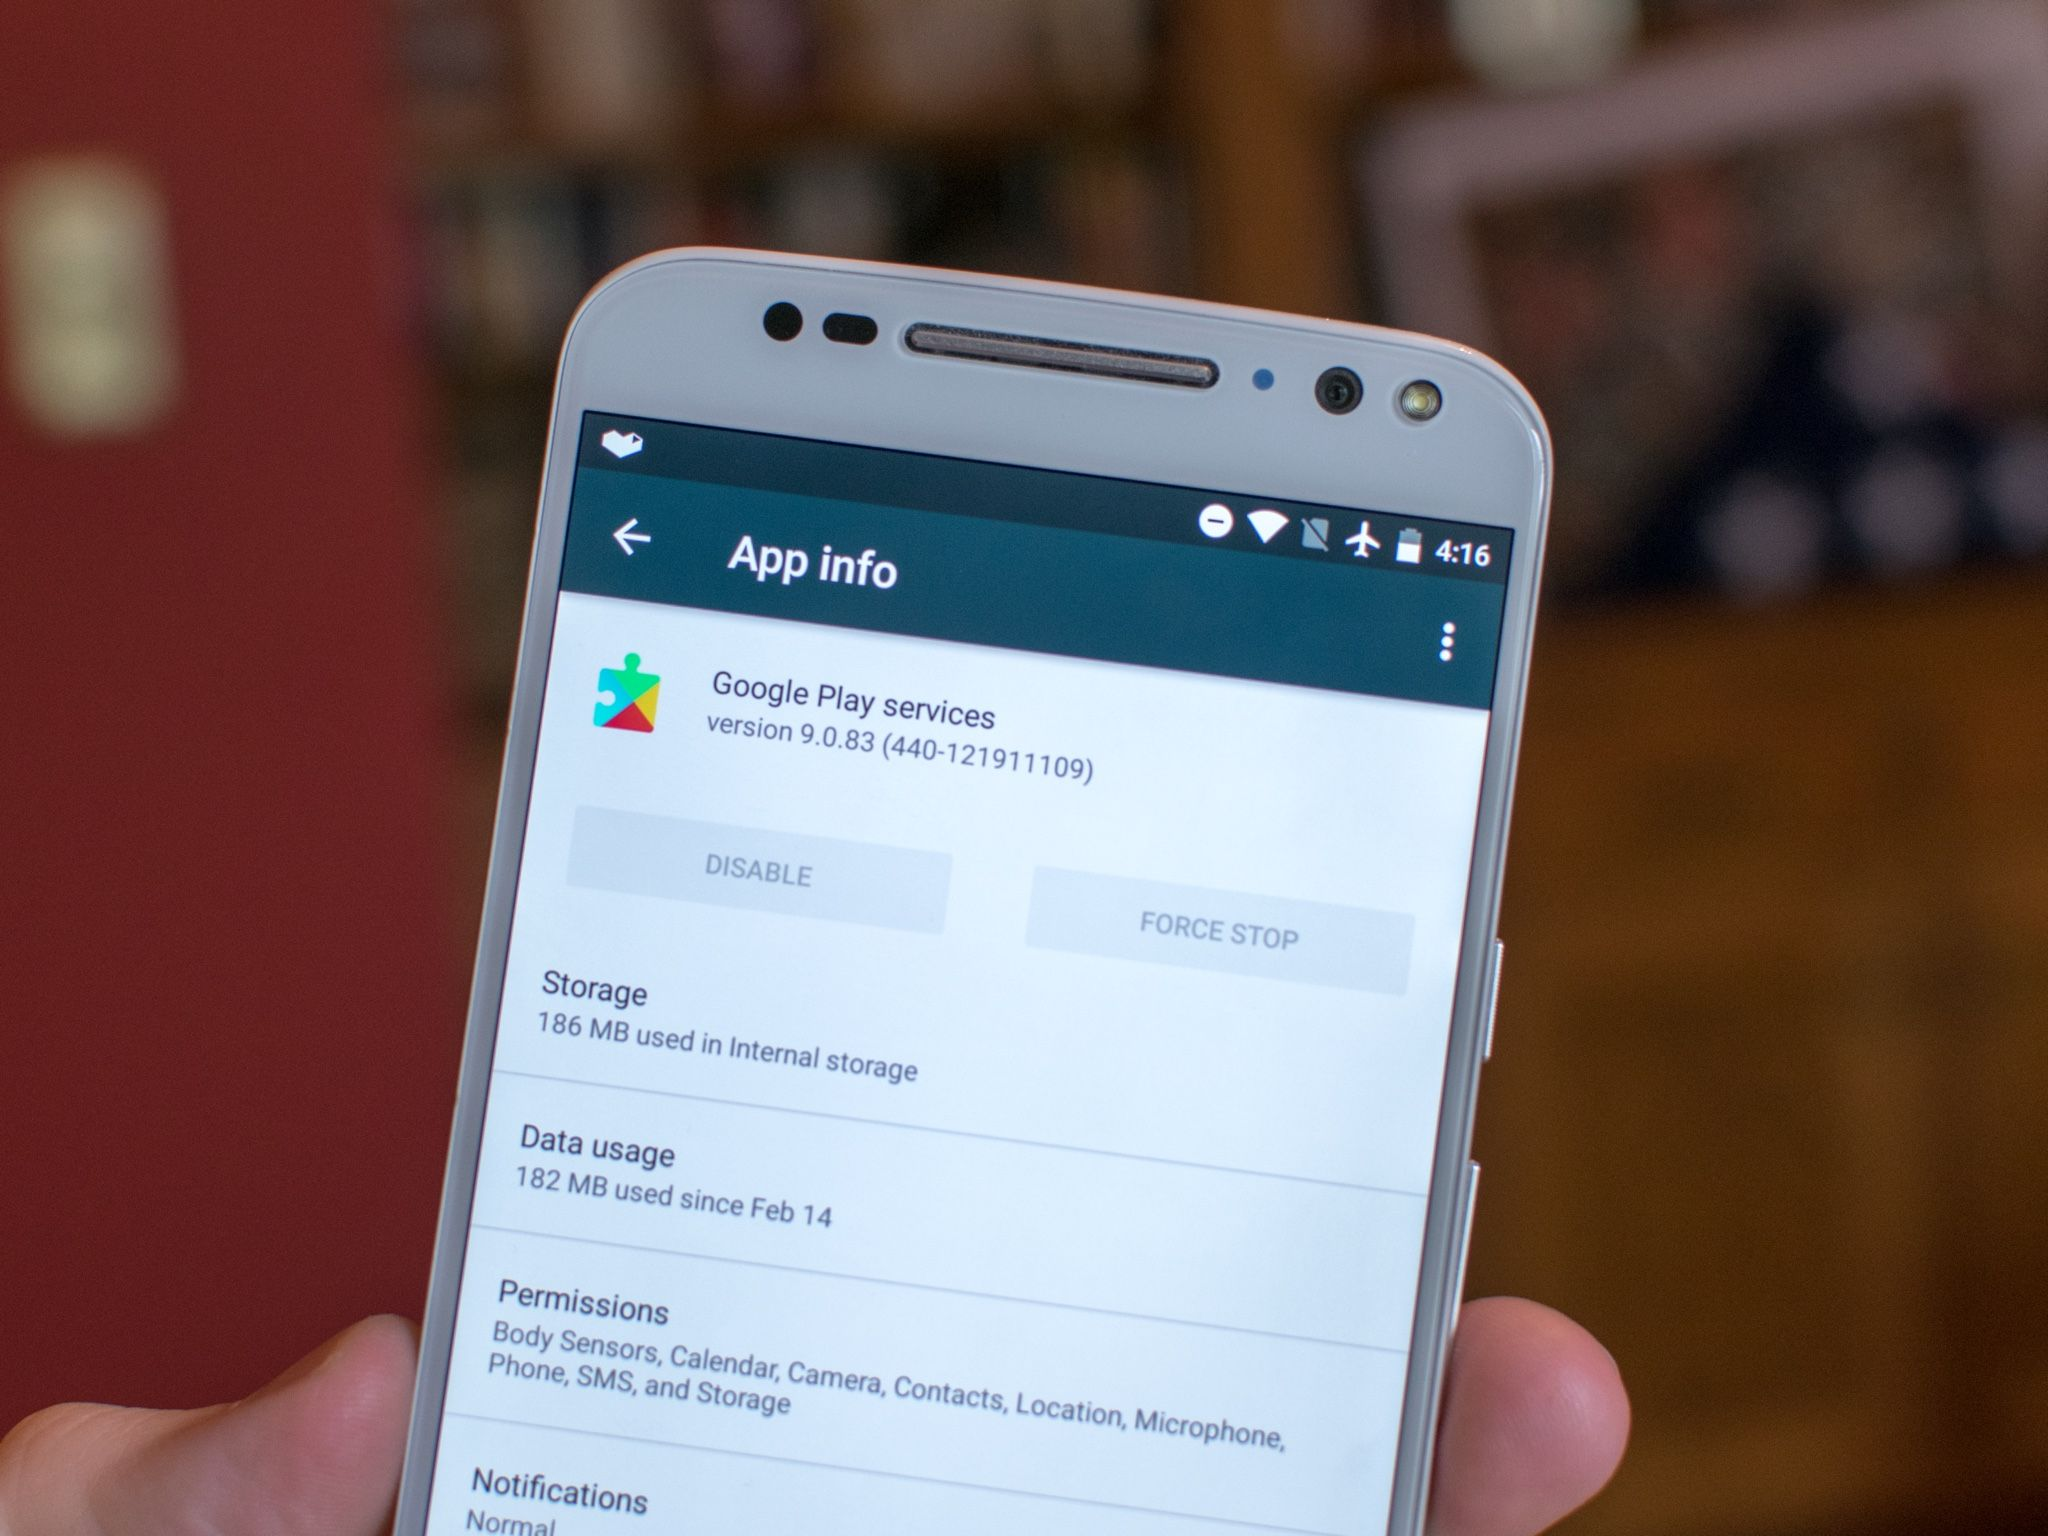 Google Play Services Android